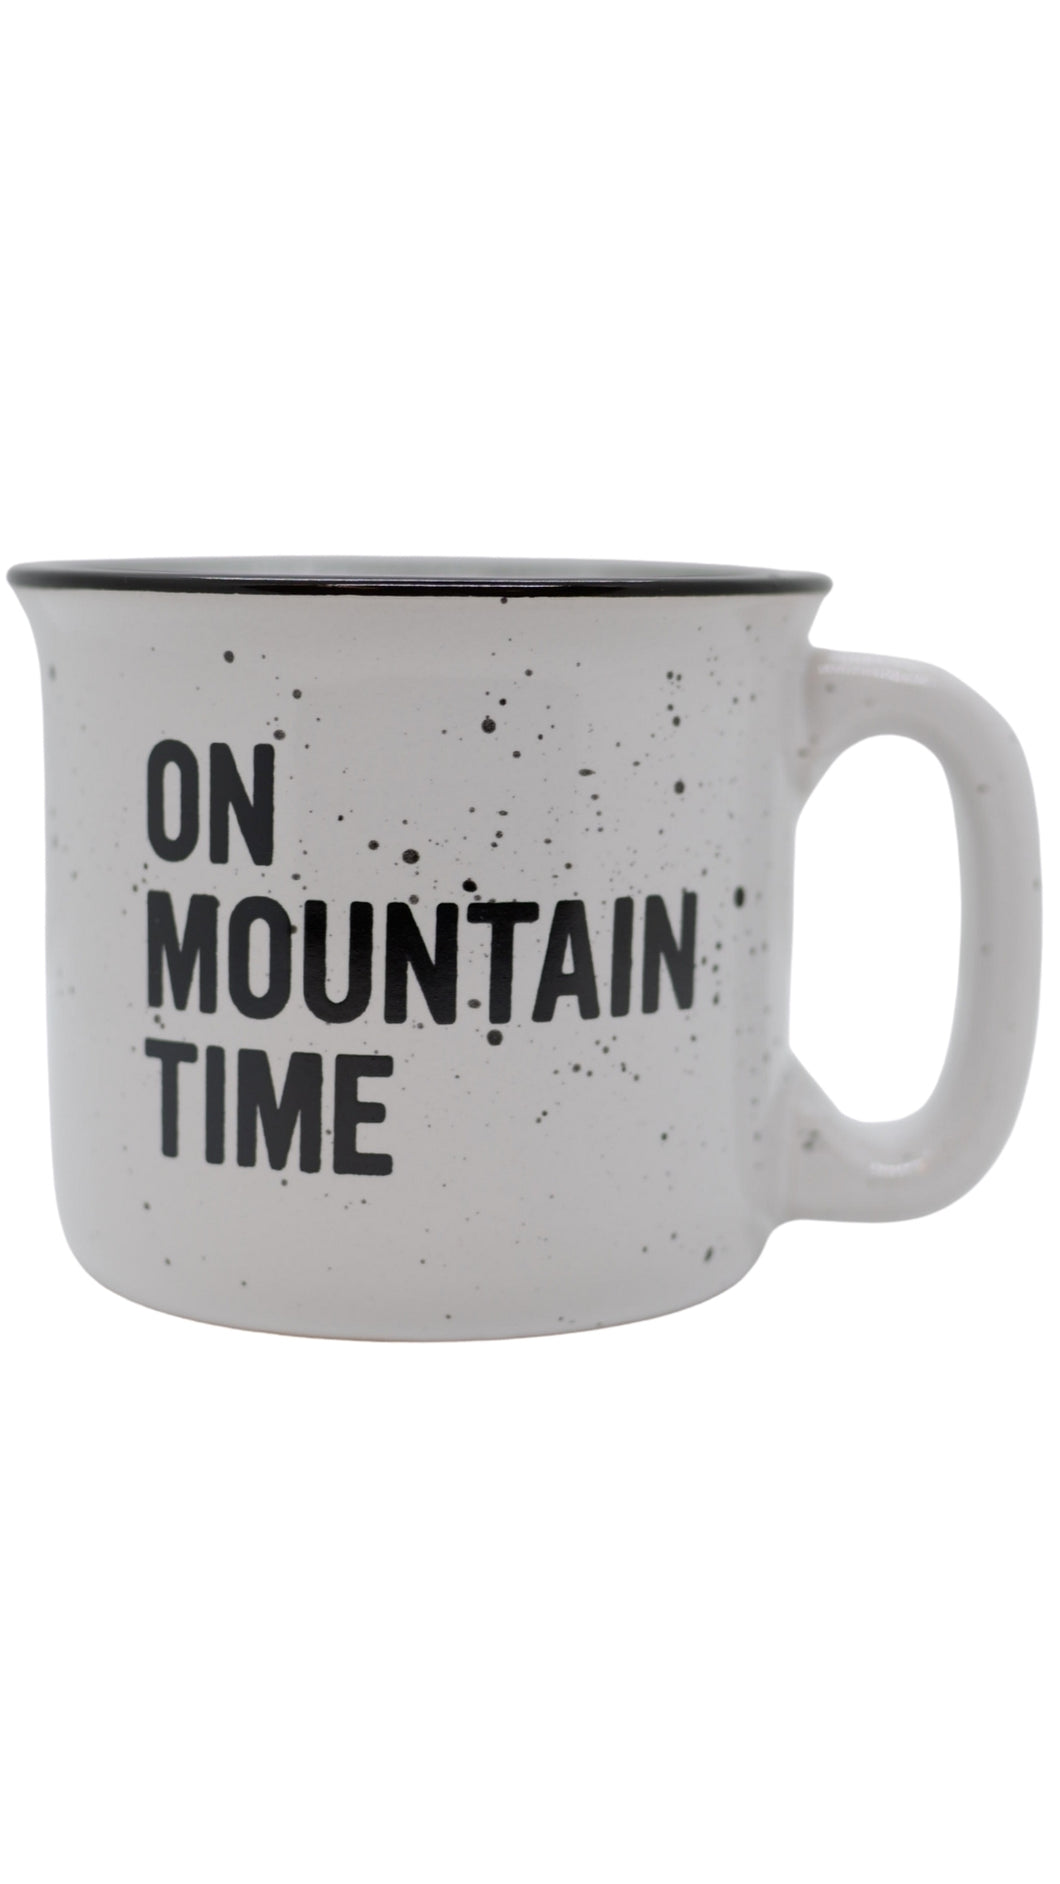 On Mountain Time Mug